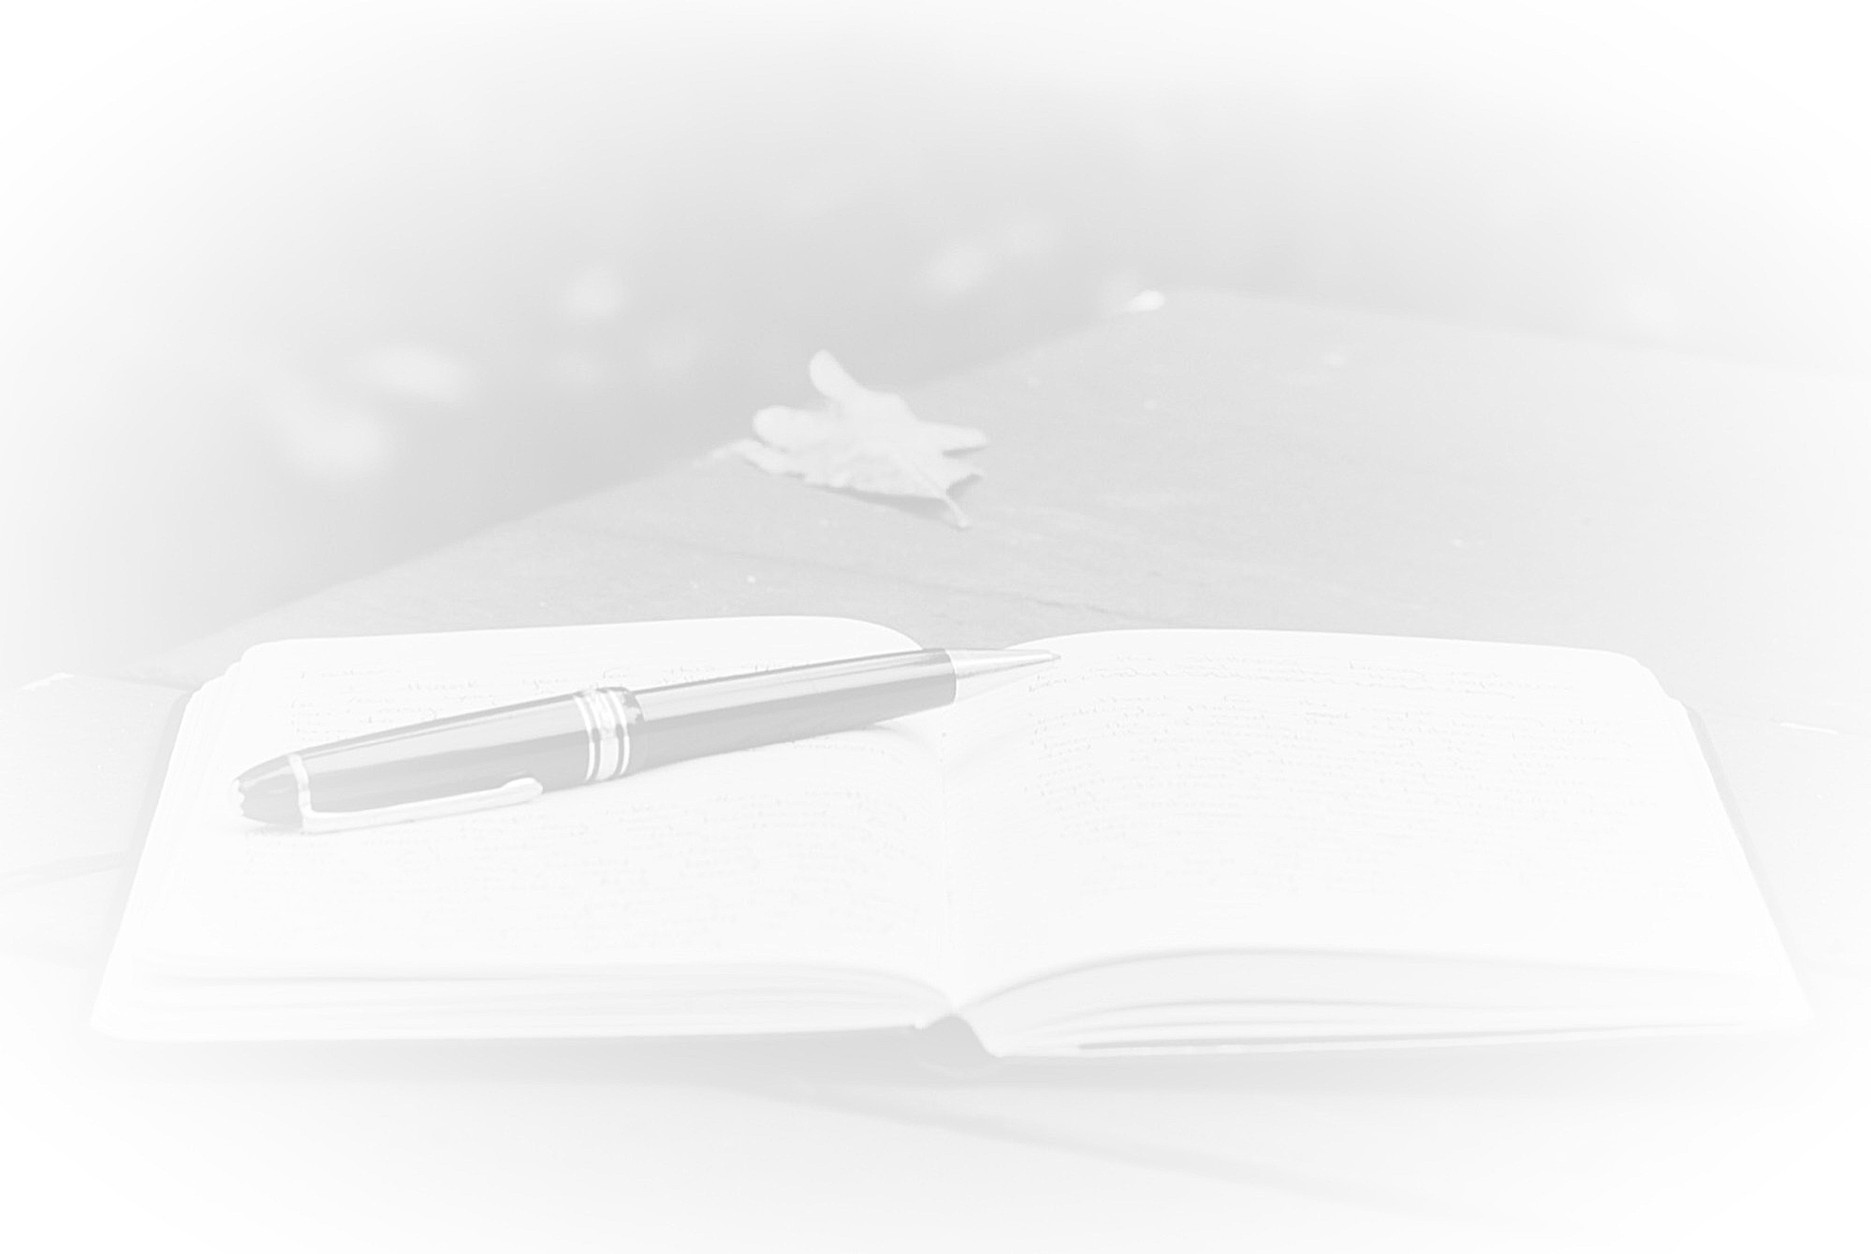 Notebook%20and%20Pen_edited.jpg